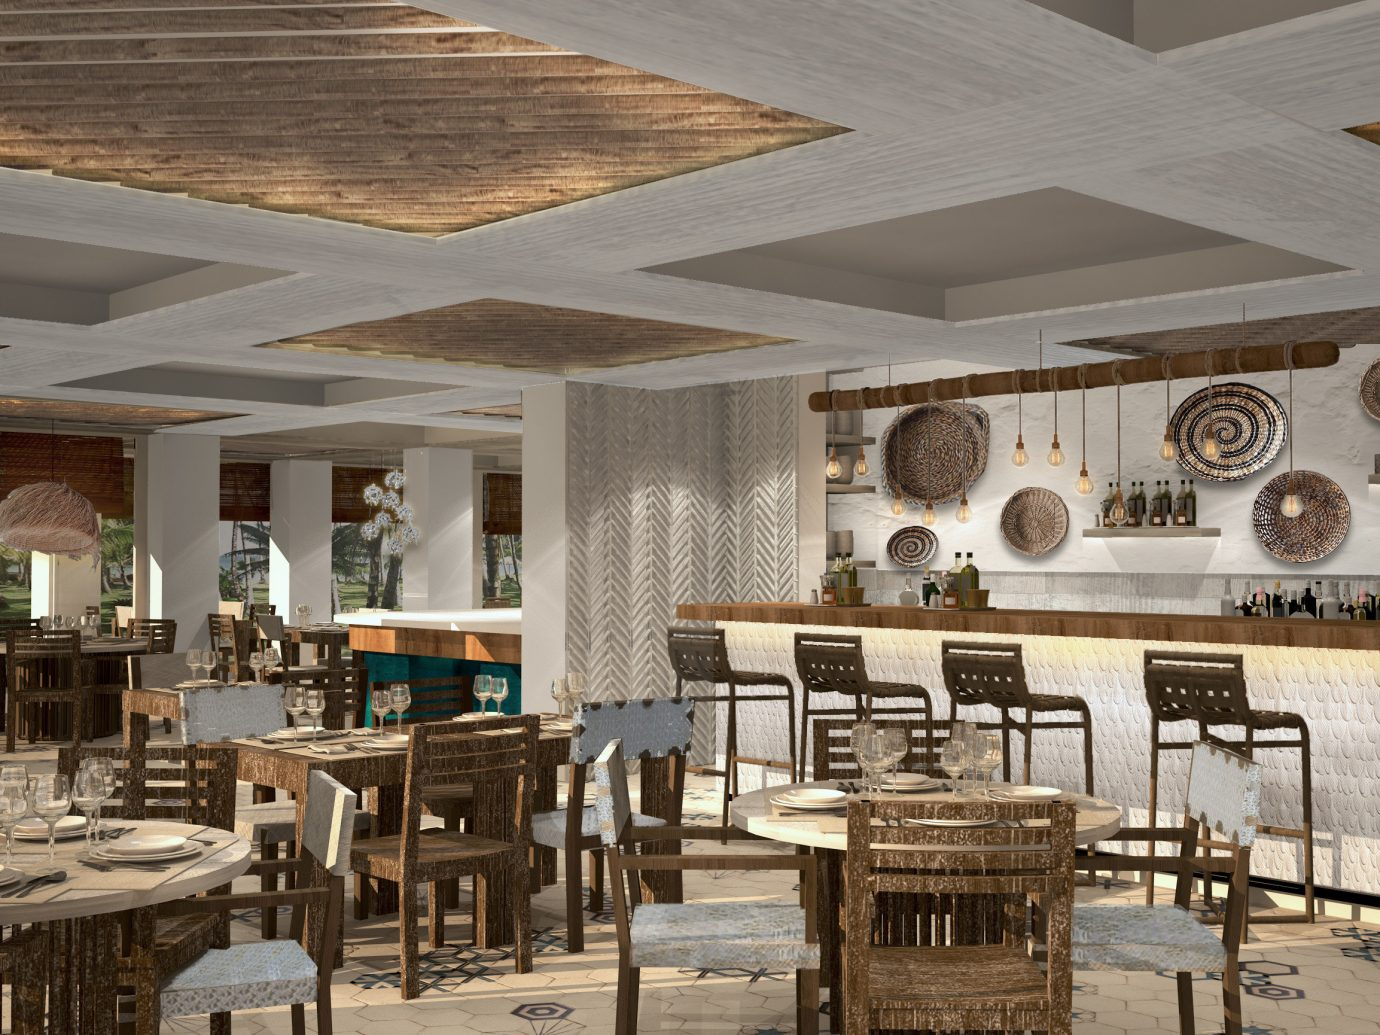 Hotels indoor ceiling chair room property estate restaurant interior design dining room furniture function hall Dining Design Lobby ballroom area wood